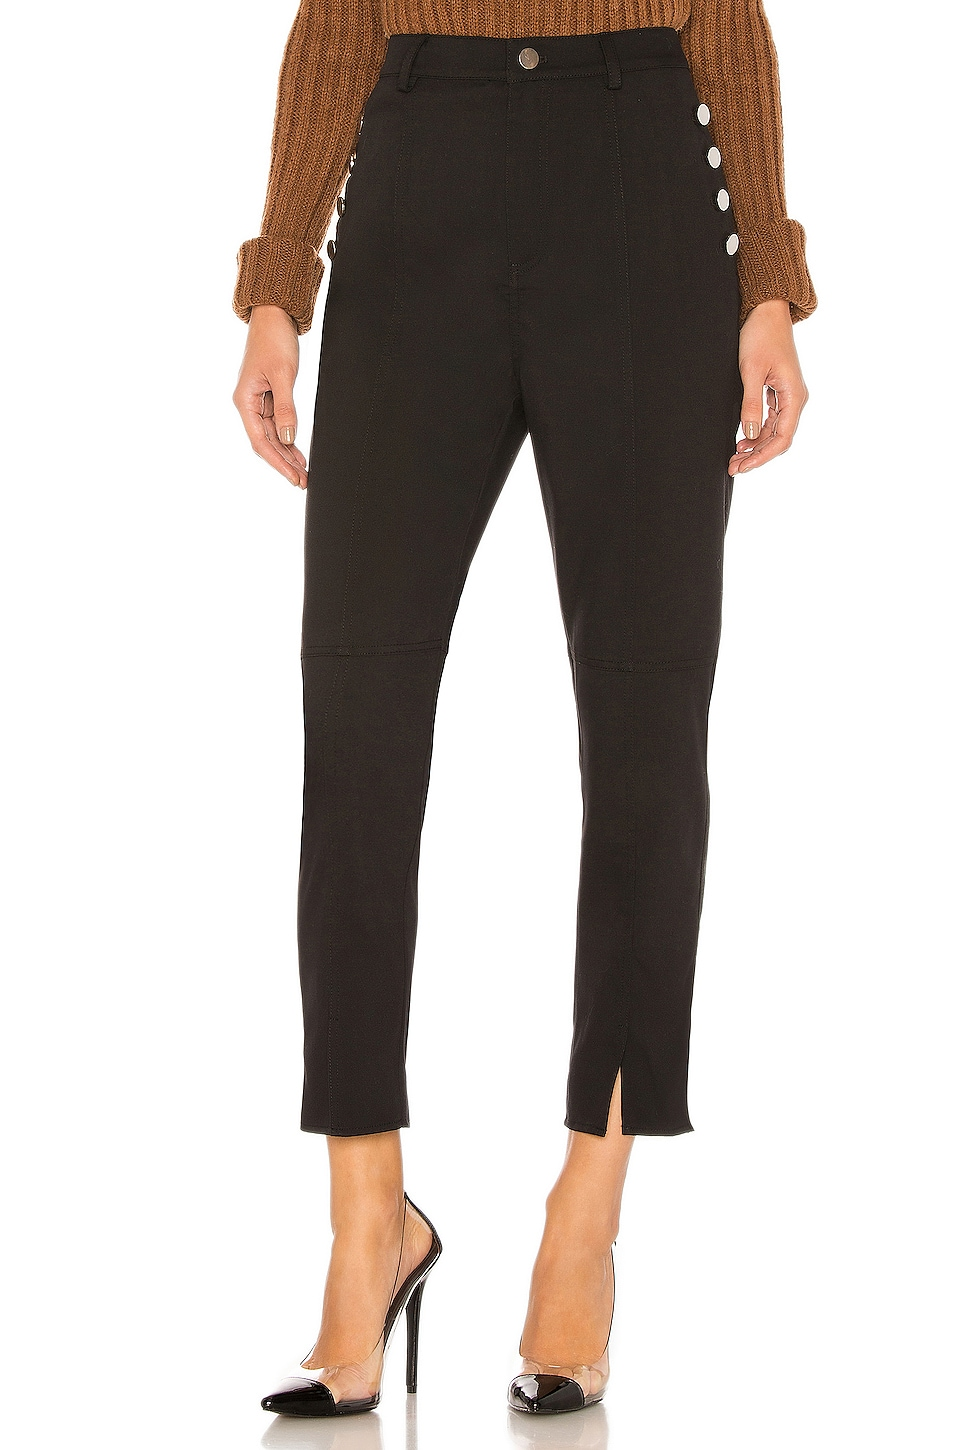 L'Academie The Mirabella Pant in Black